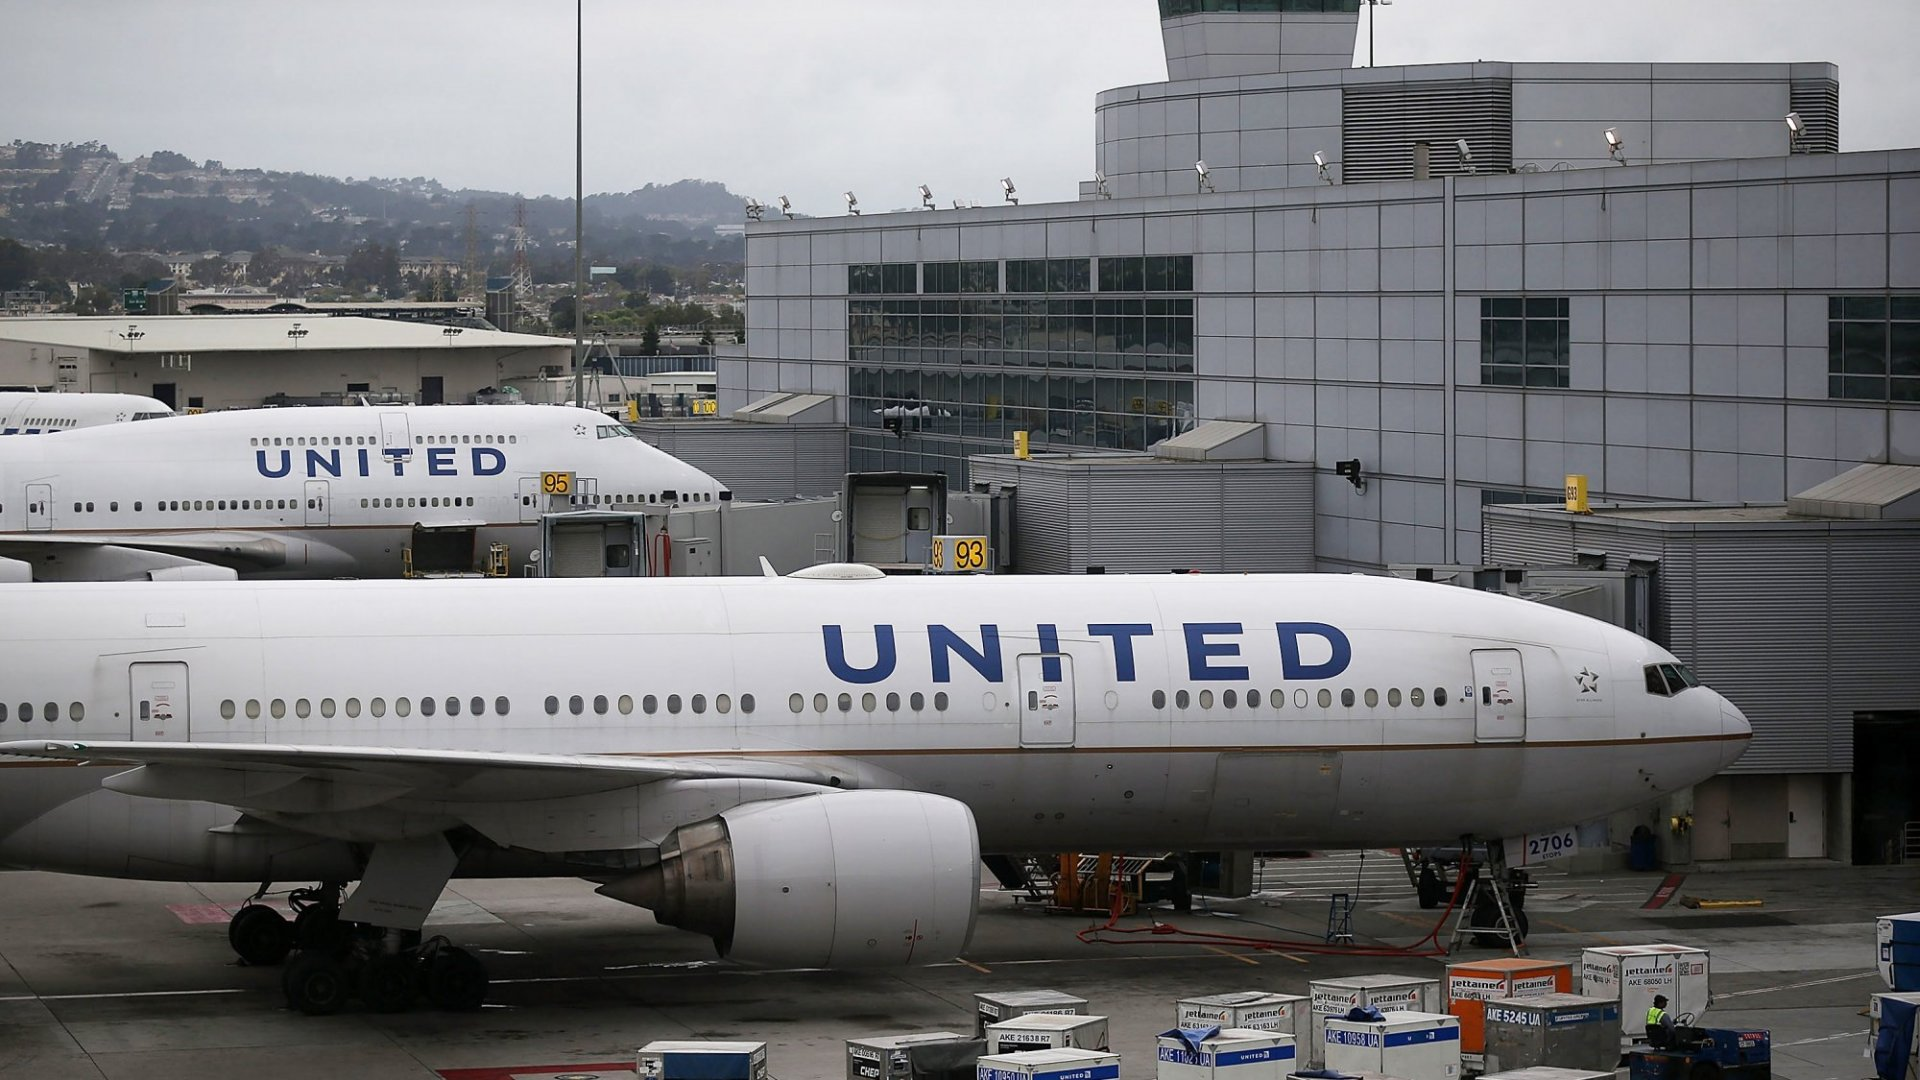 United Airlines Passengers Revolted When United Took This 1 Thing Off Its Planes. Guess What Happened When It Came Back?